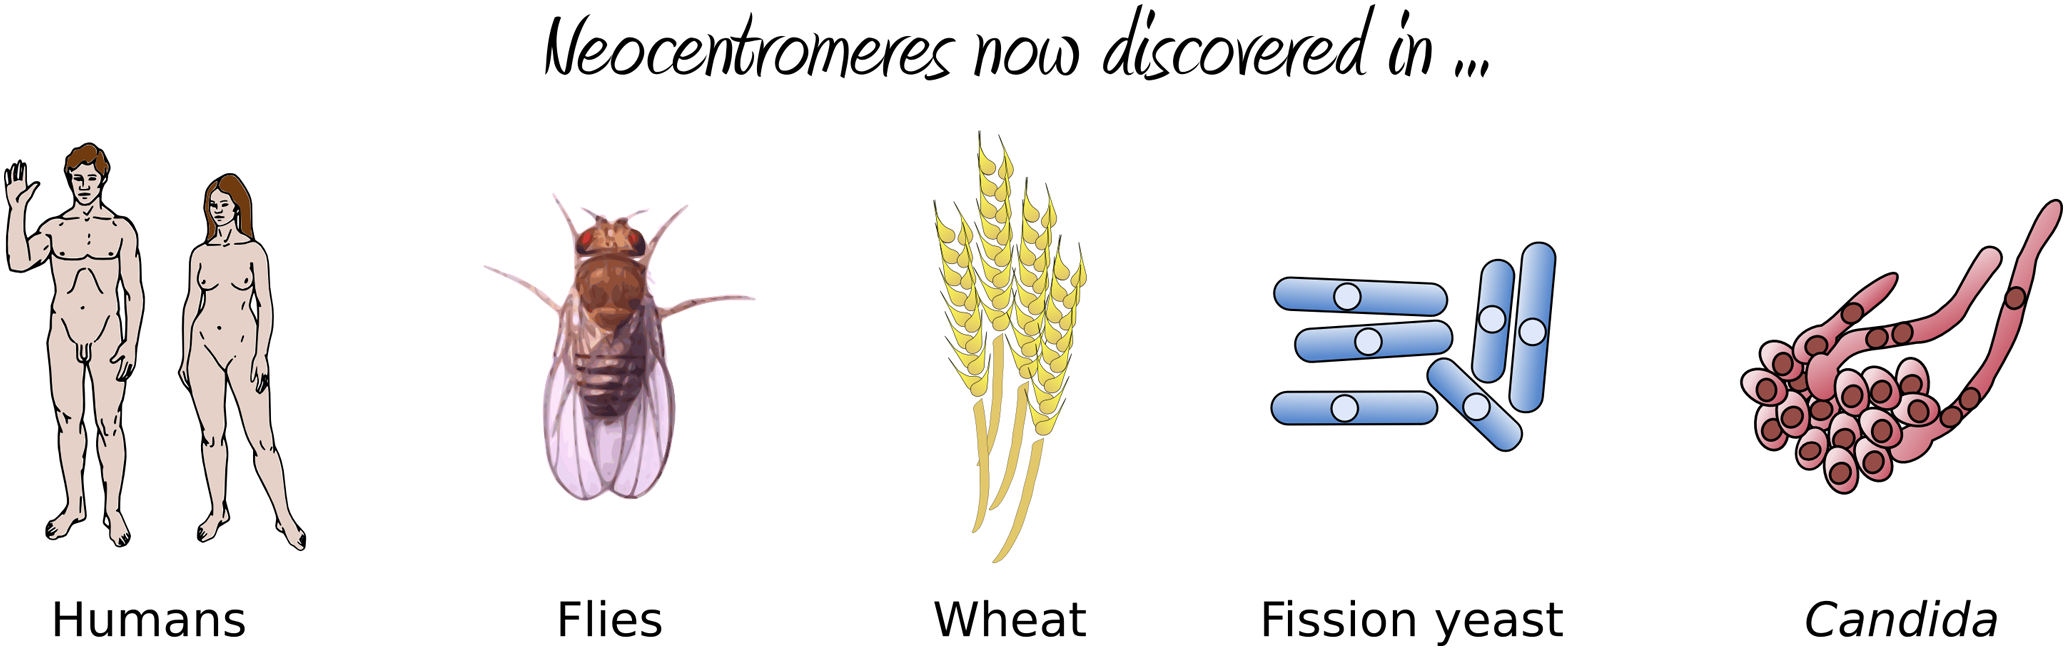 Organisms in which neocentromere formation has been reported.